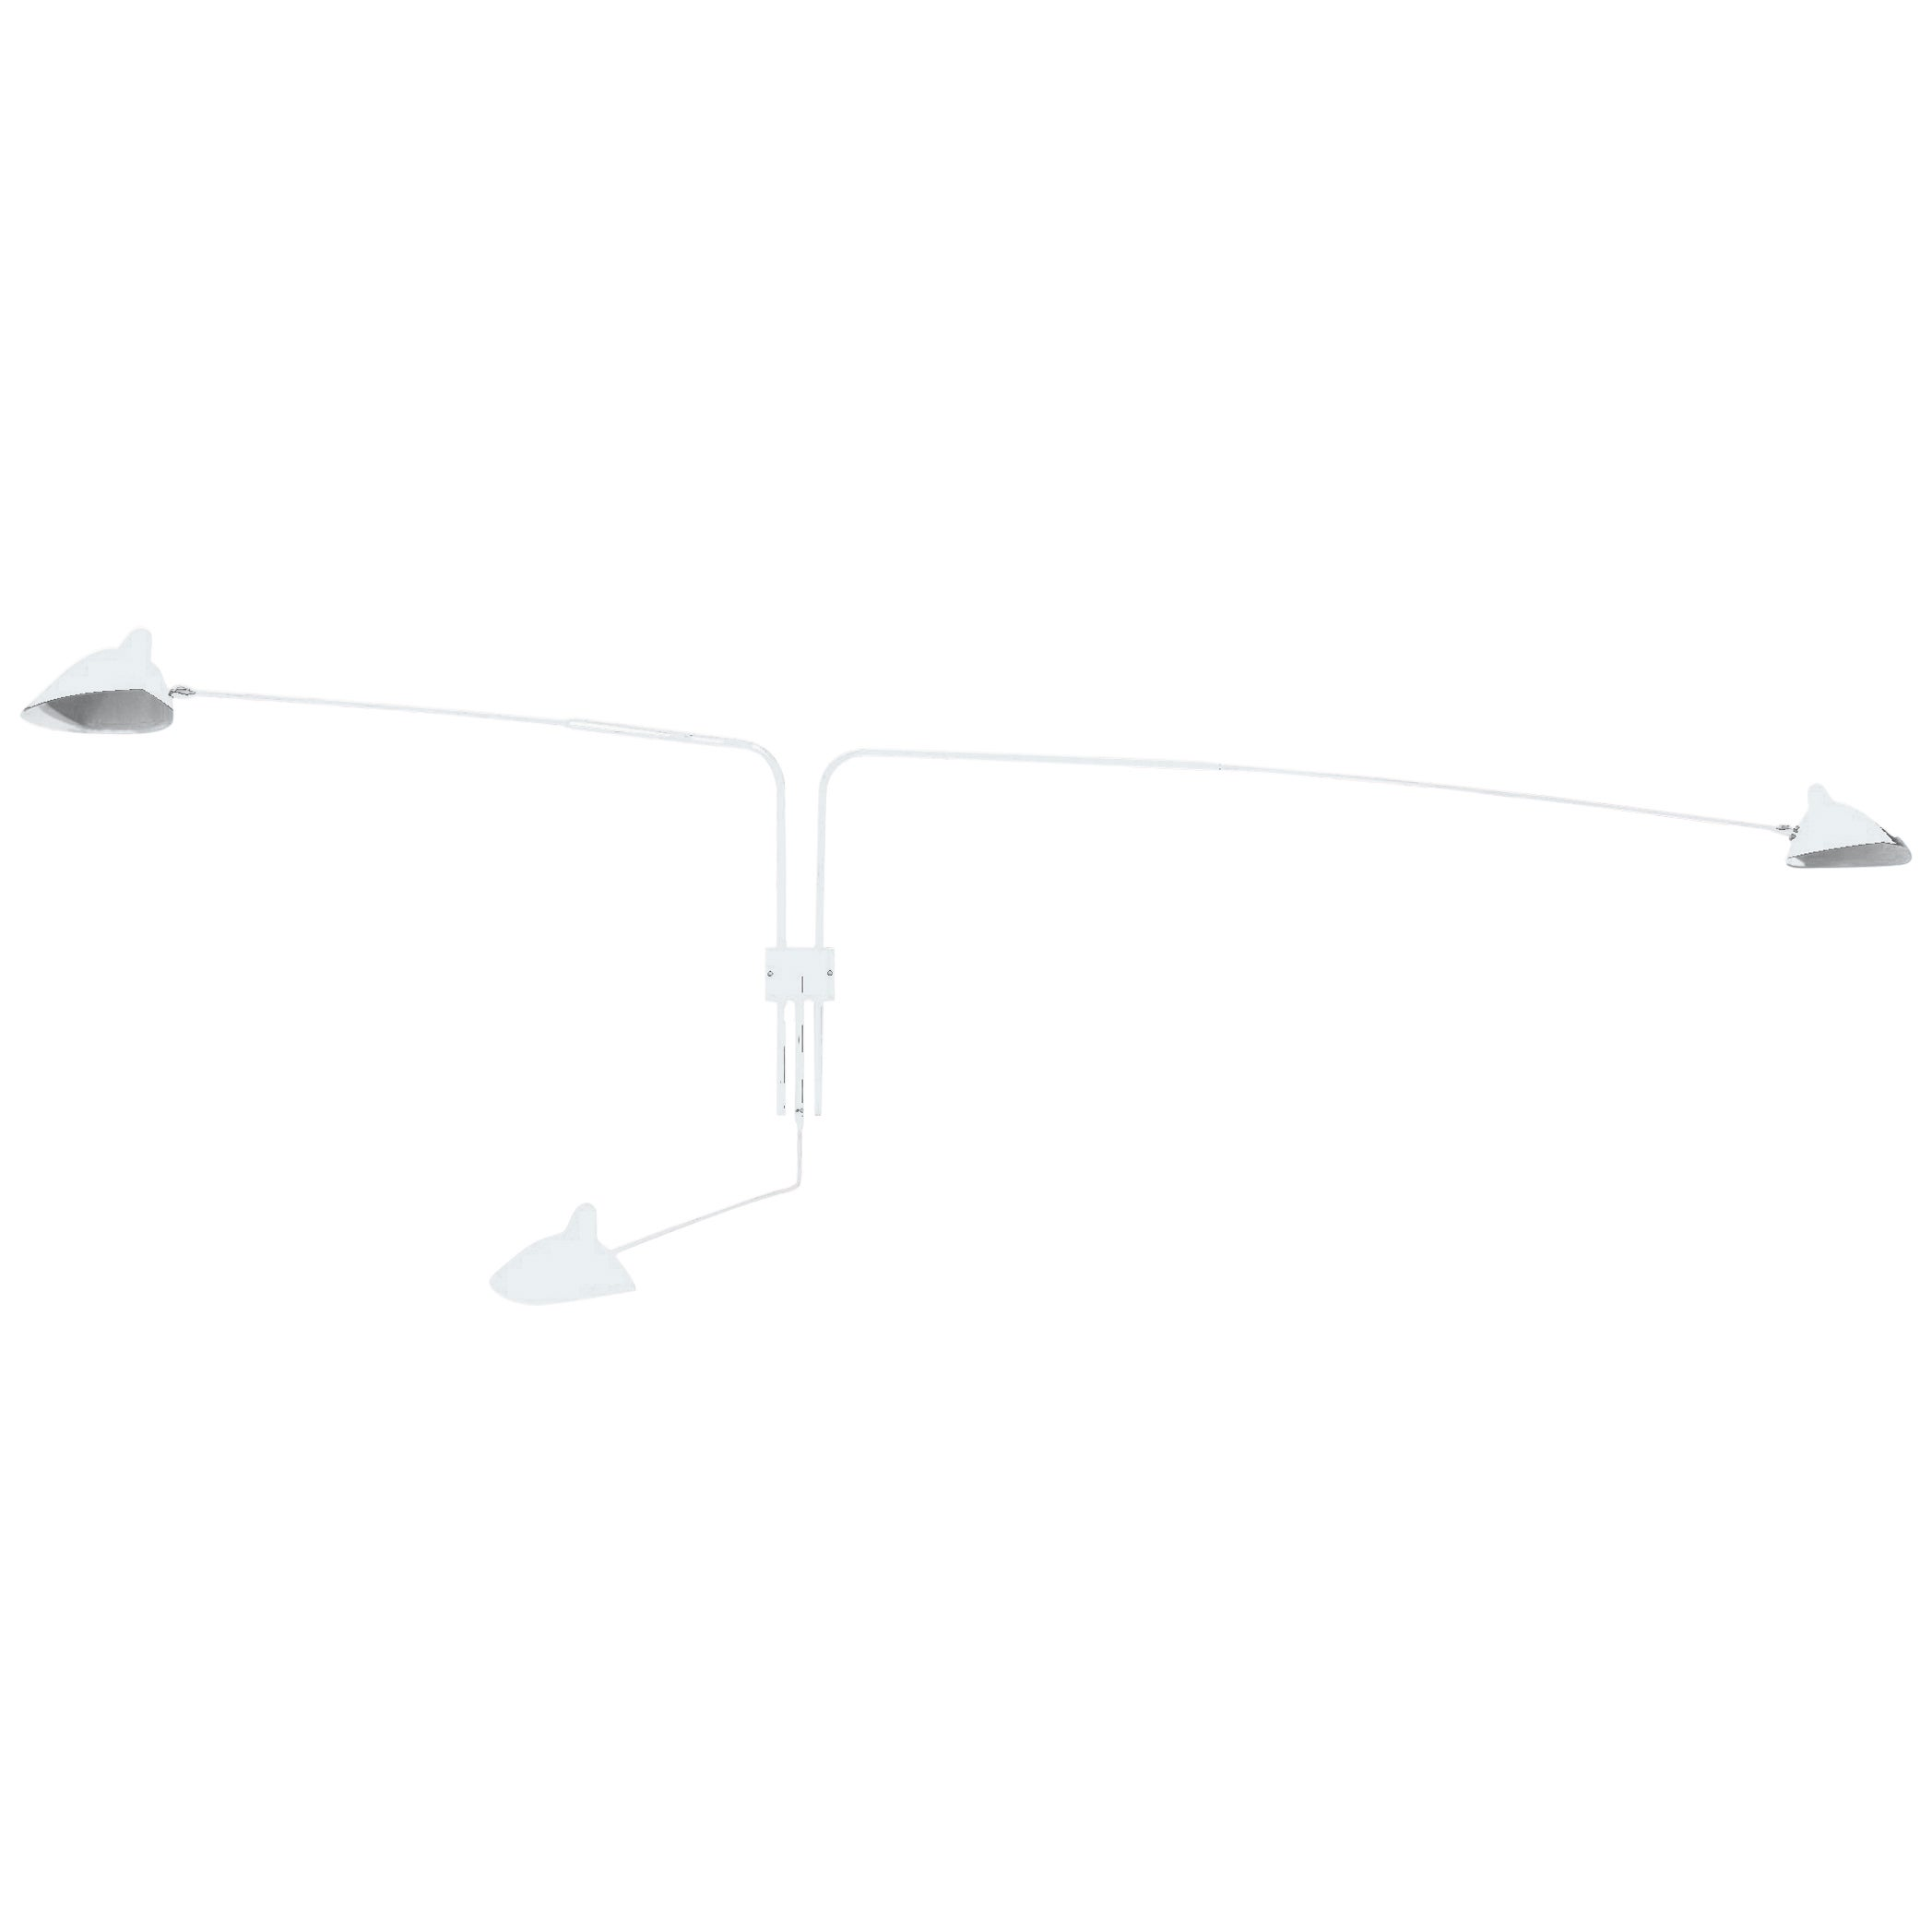 Wall Sconce Three Rotating Arms by Serge Mouille in White